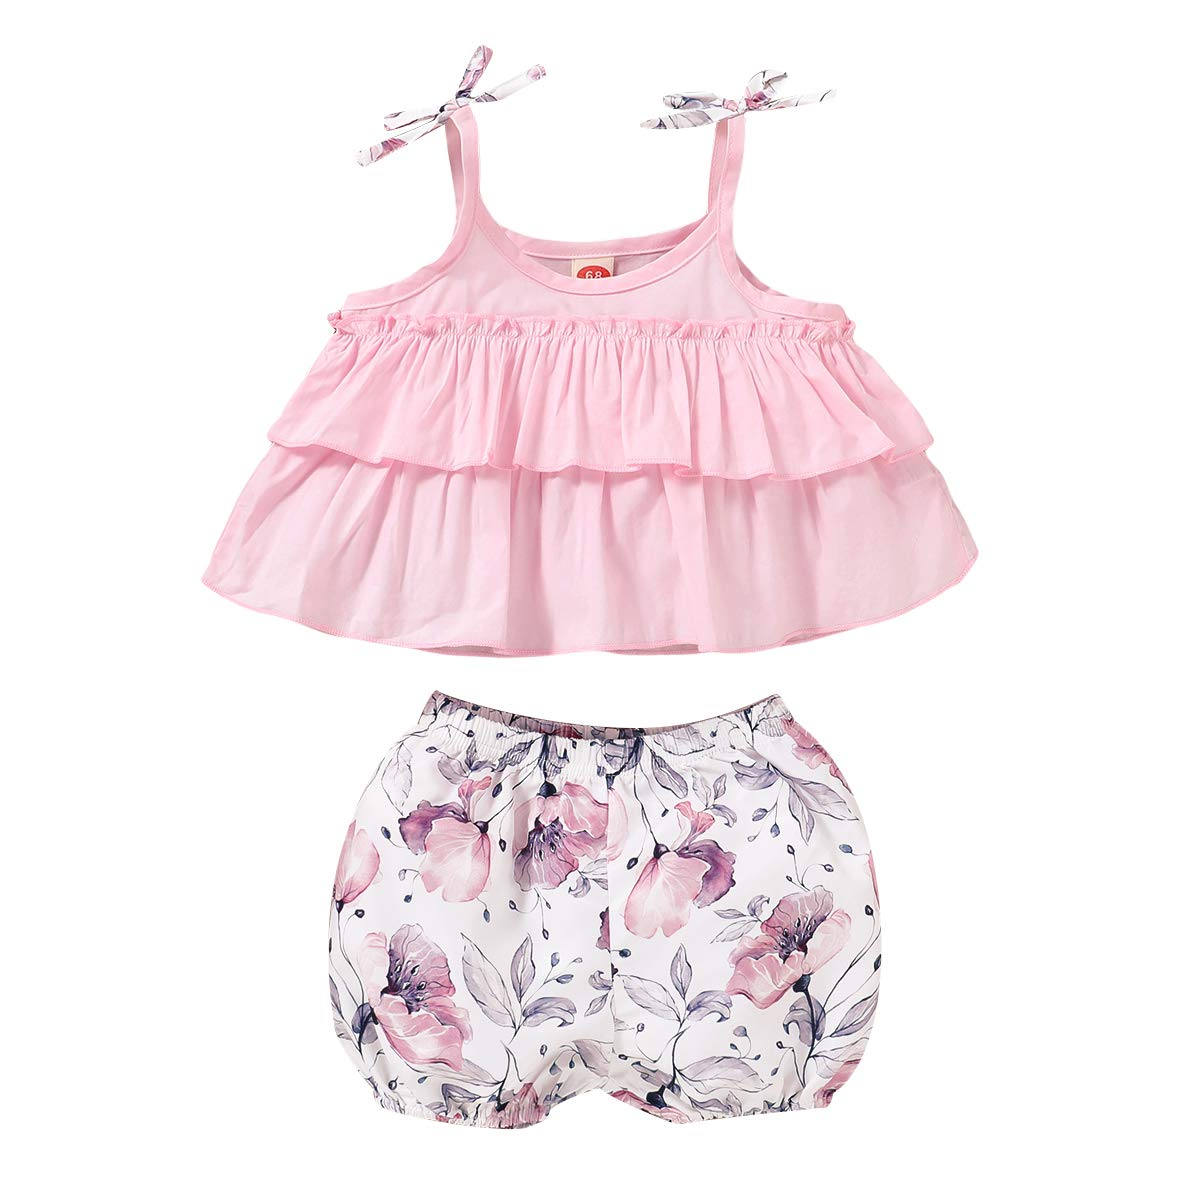 Toddler Baby Girls Summer Short Set Clothes Halter Ruffled Top Floral Shorts 2Pcs Outfits